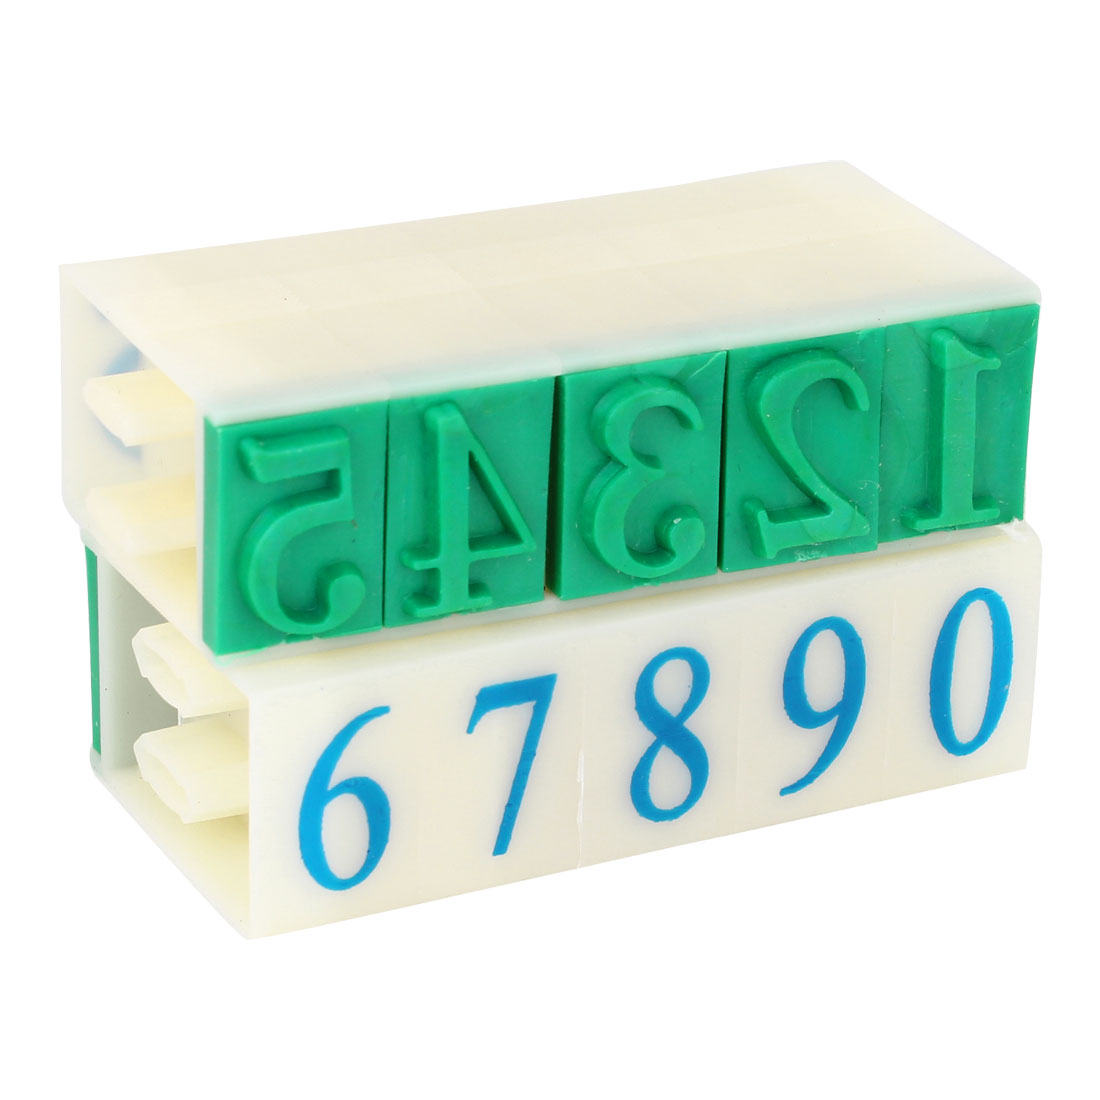 Rubber Head 10 Arabic Numerals Combination Stamp Set Green 18mm x 11mm